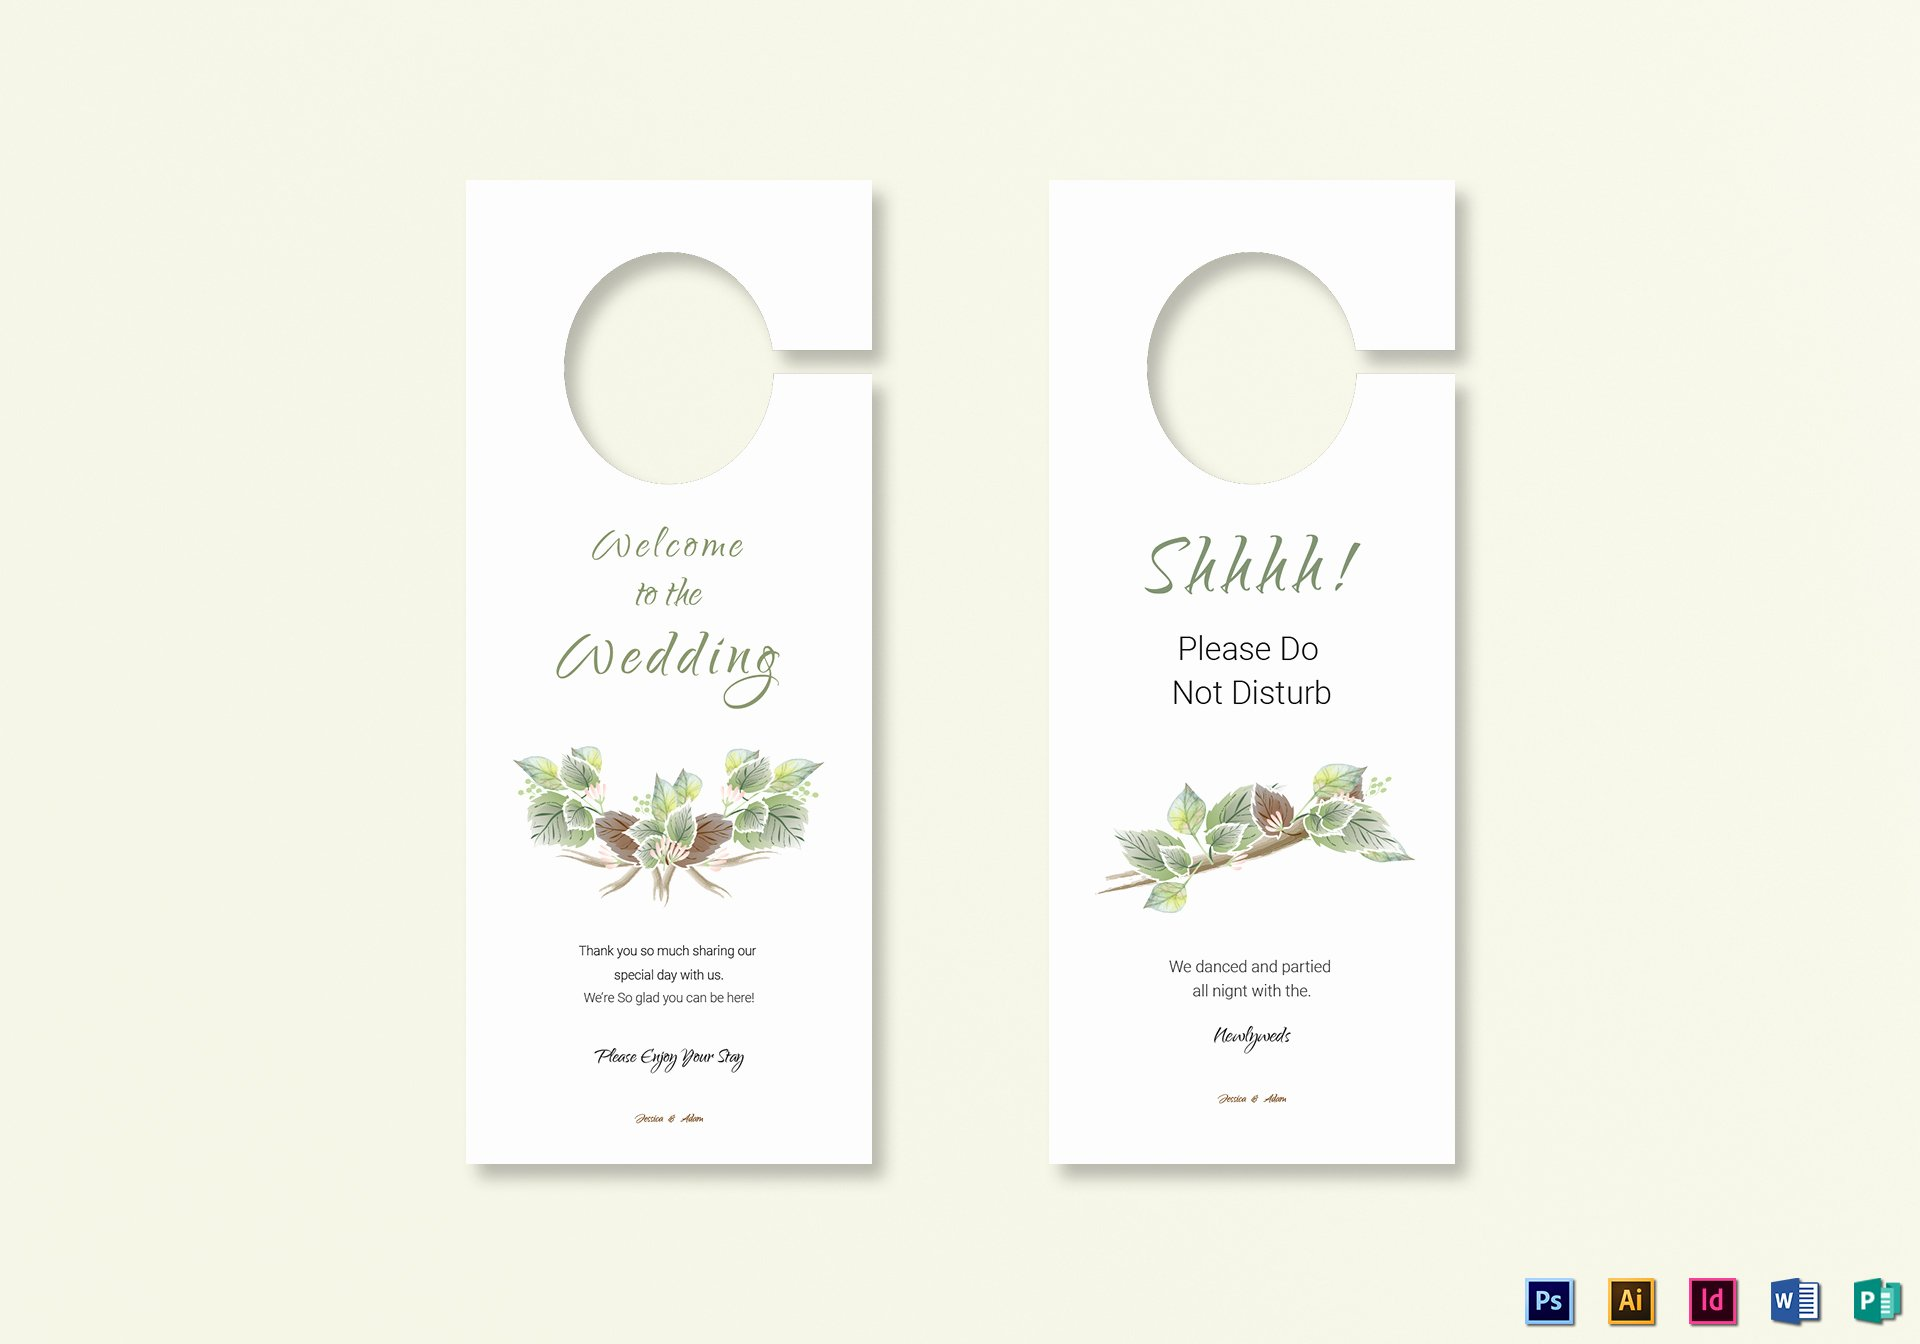 Door Hanger Template Publisher Inspirational Fall Wedding Door Hanger Template In Psd Word Publisher Illustrator Indesign